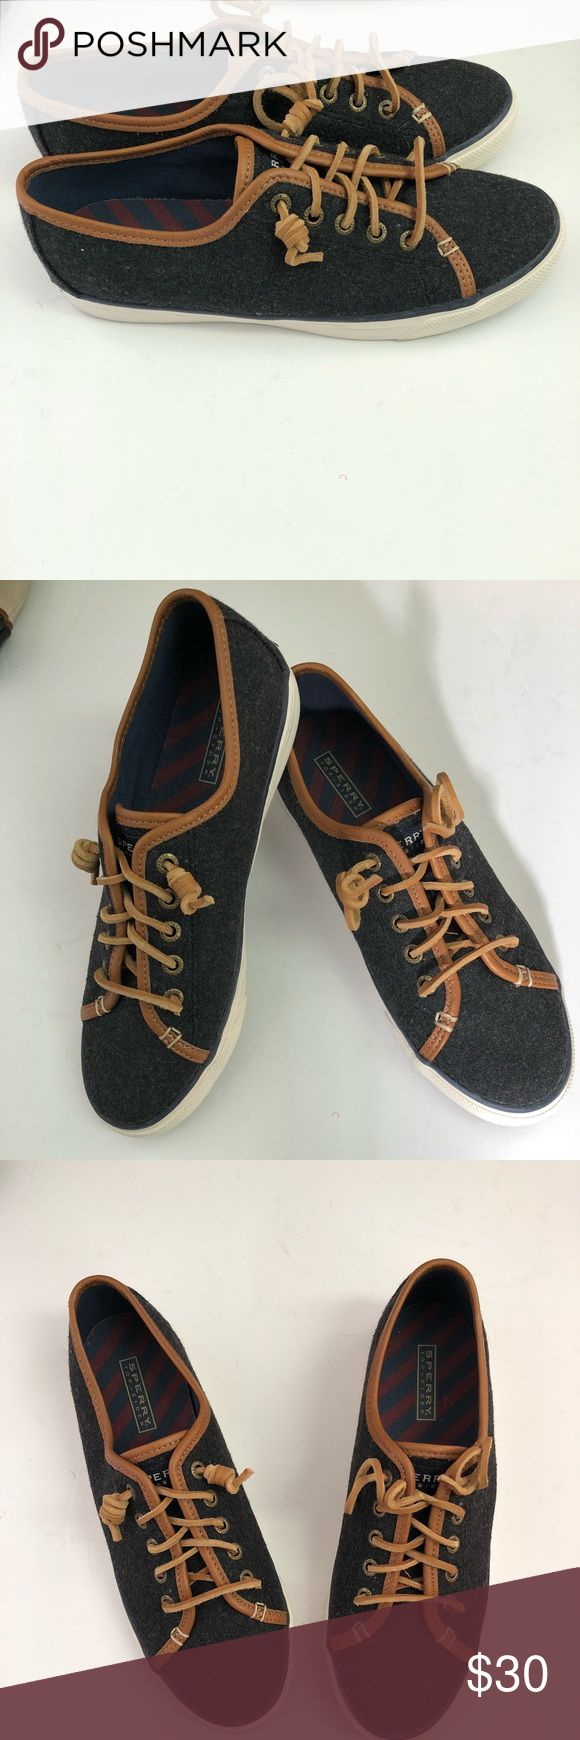 """Sperry Top-Sider """"Seacoast""""  Boat Shoes Black 9.5M Brand new without box with original tags and price/size markings at the bottom. A very stylish canvas  sneaker for your every day wear. Sperry Top-Sider Shoes Sneakers"""